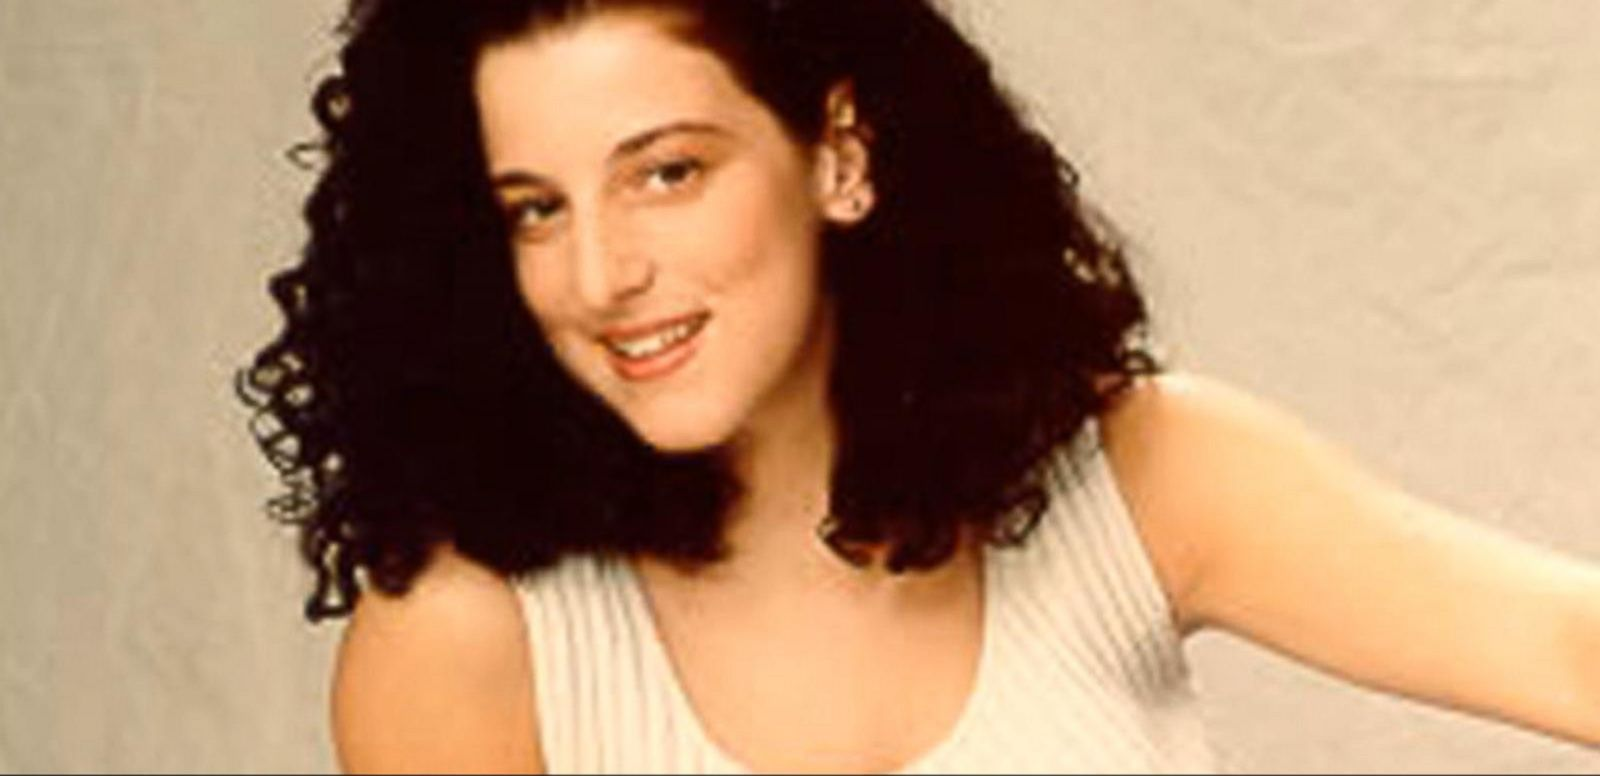 VIDEO: New Twist in the Chandra Levy Murder